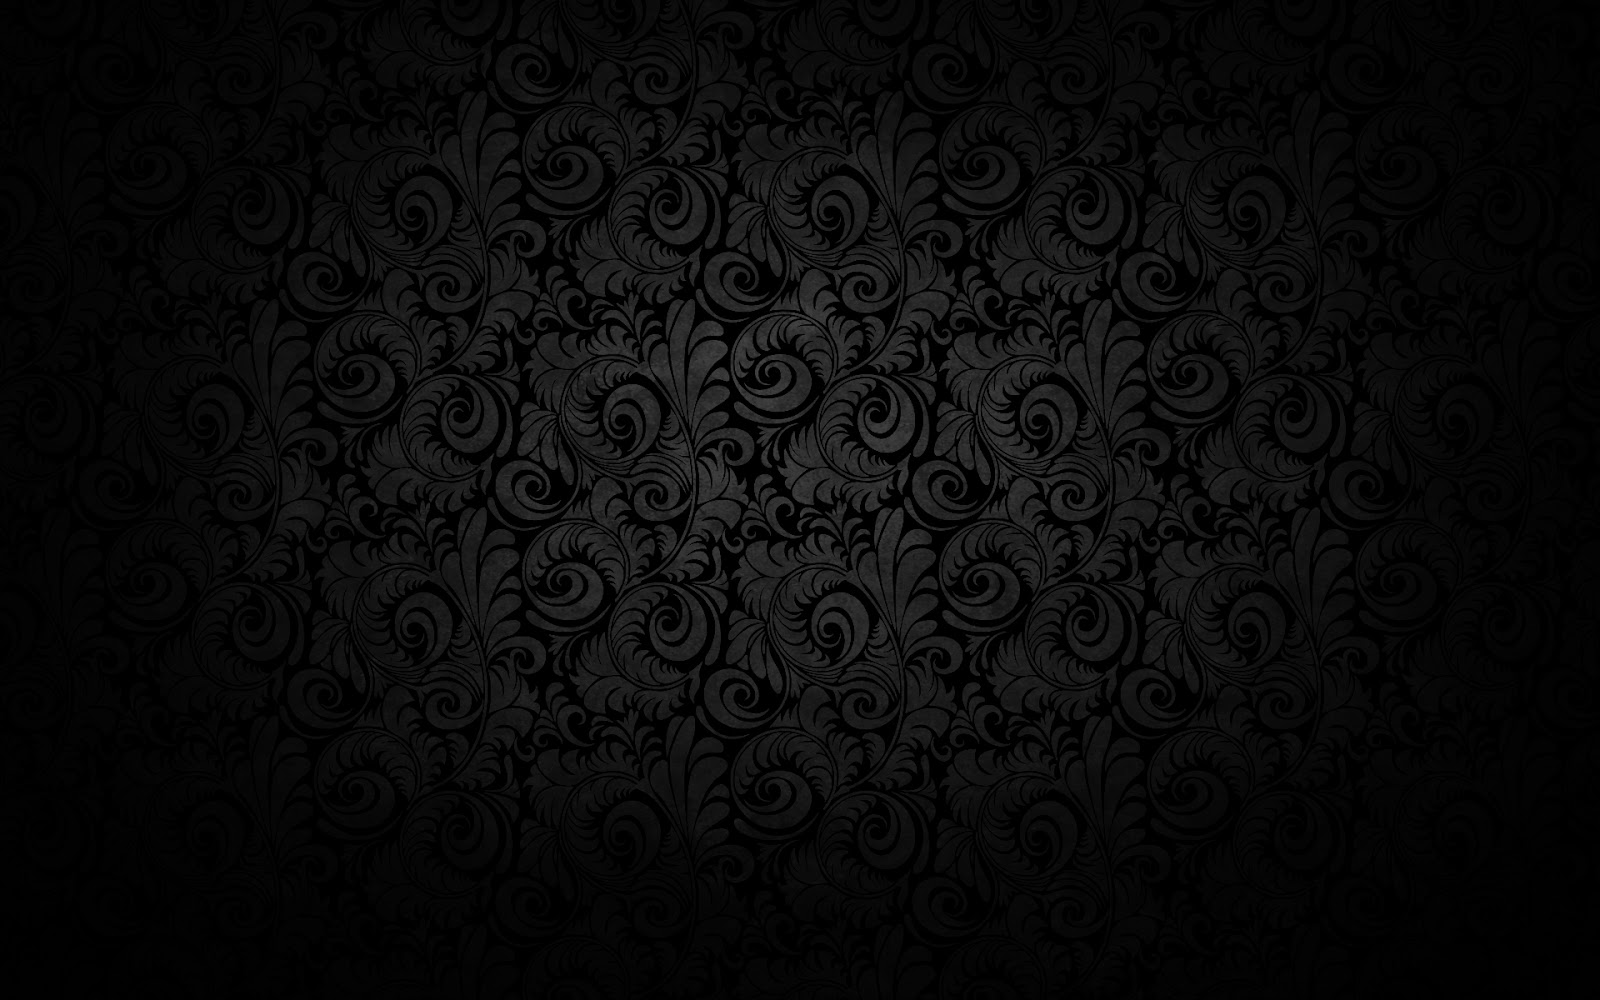 Dark background grey floral pattern hd texture image free download jpg